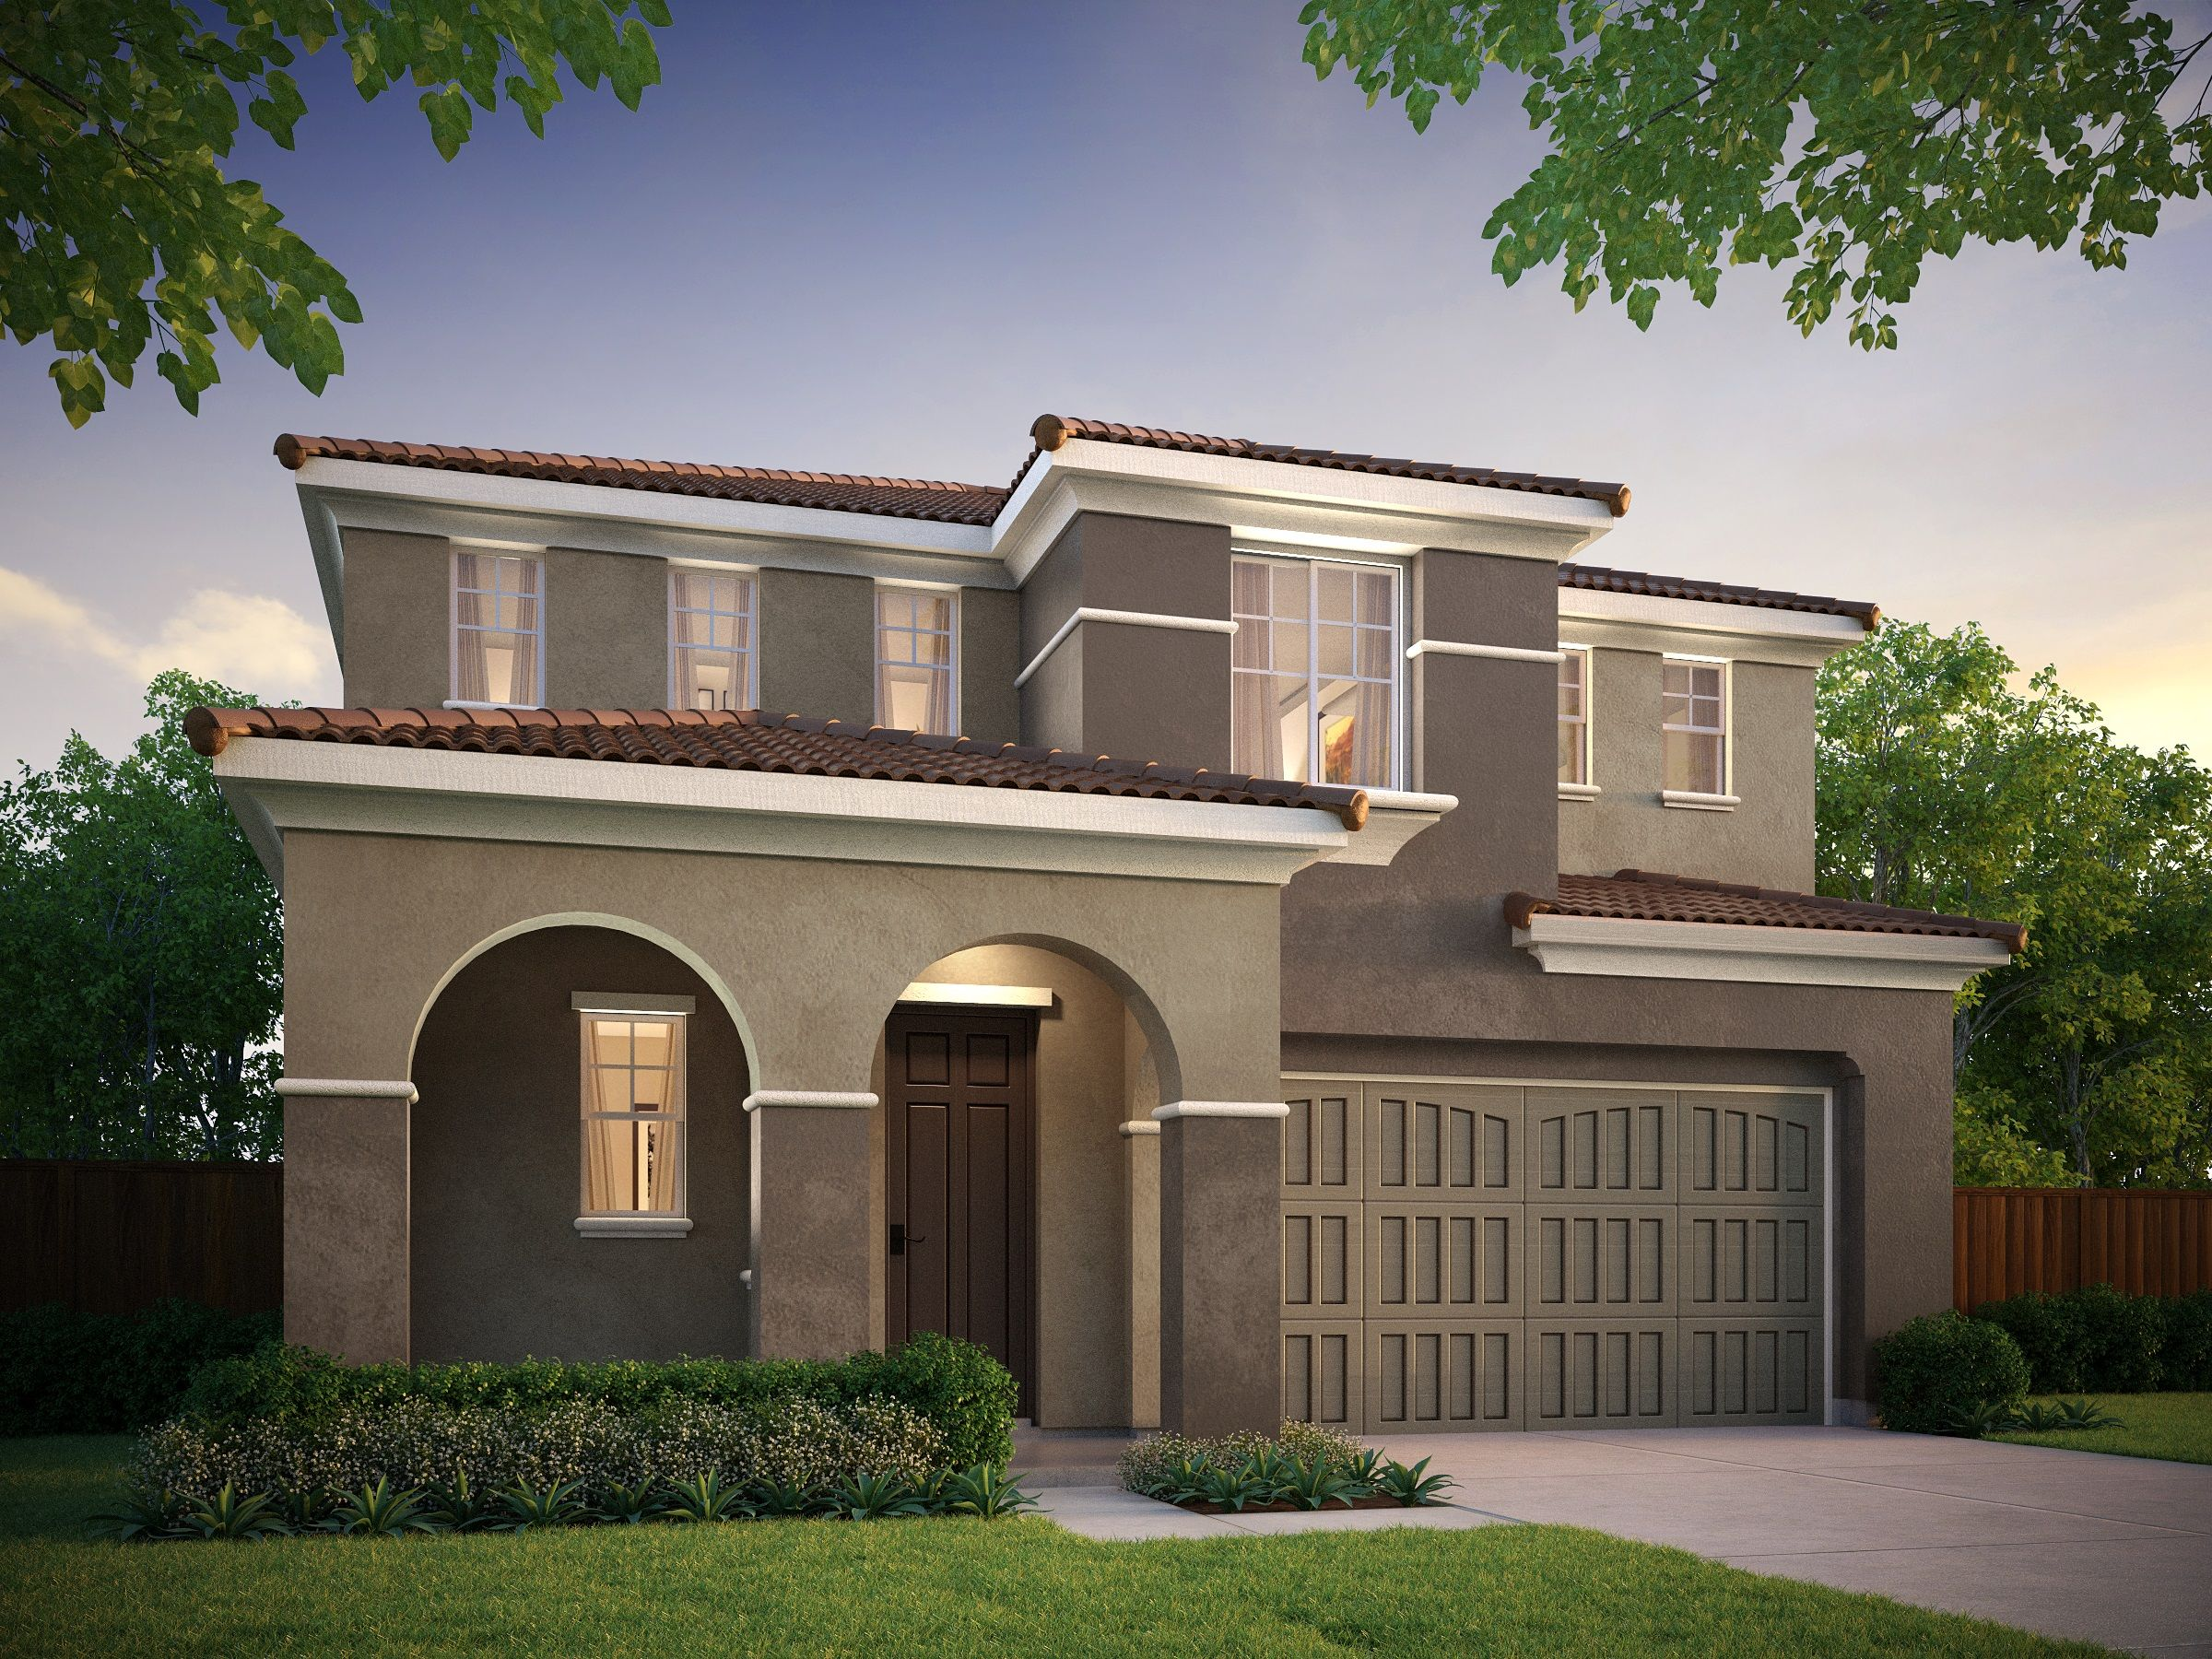 New Homes in Lathrop, CA | 256 New Homes | NewHomeSource ?